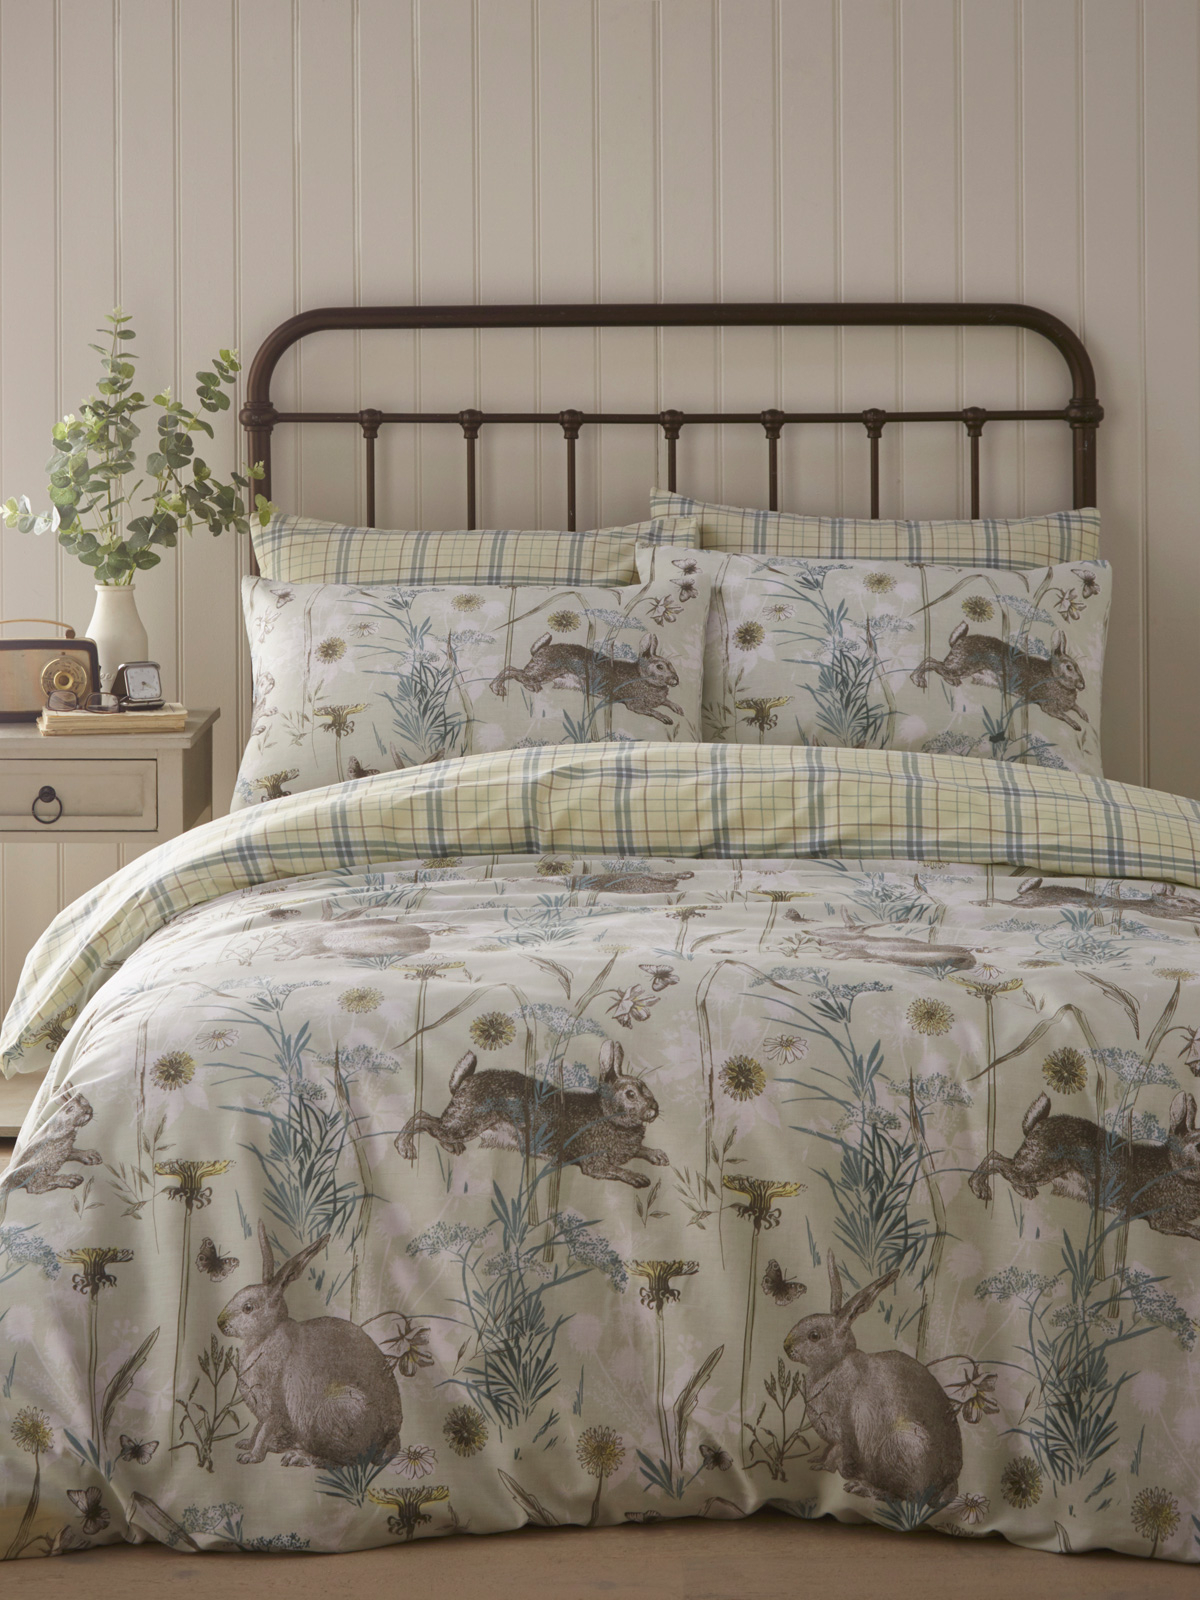 Portfolio Rabbit Meadow Sage King Size Duvet Cover Set